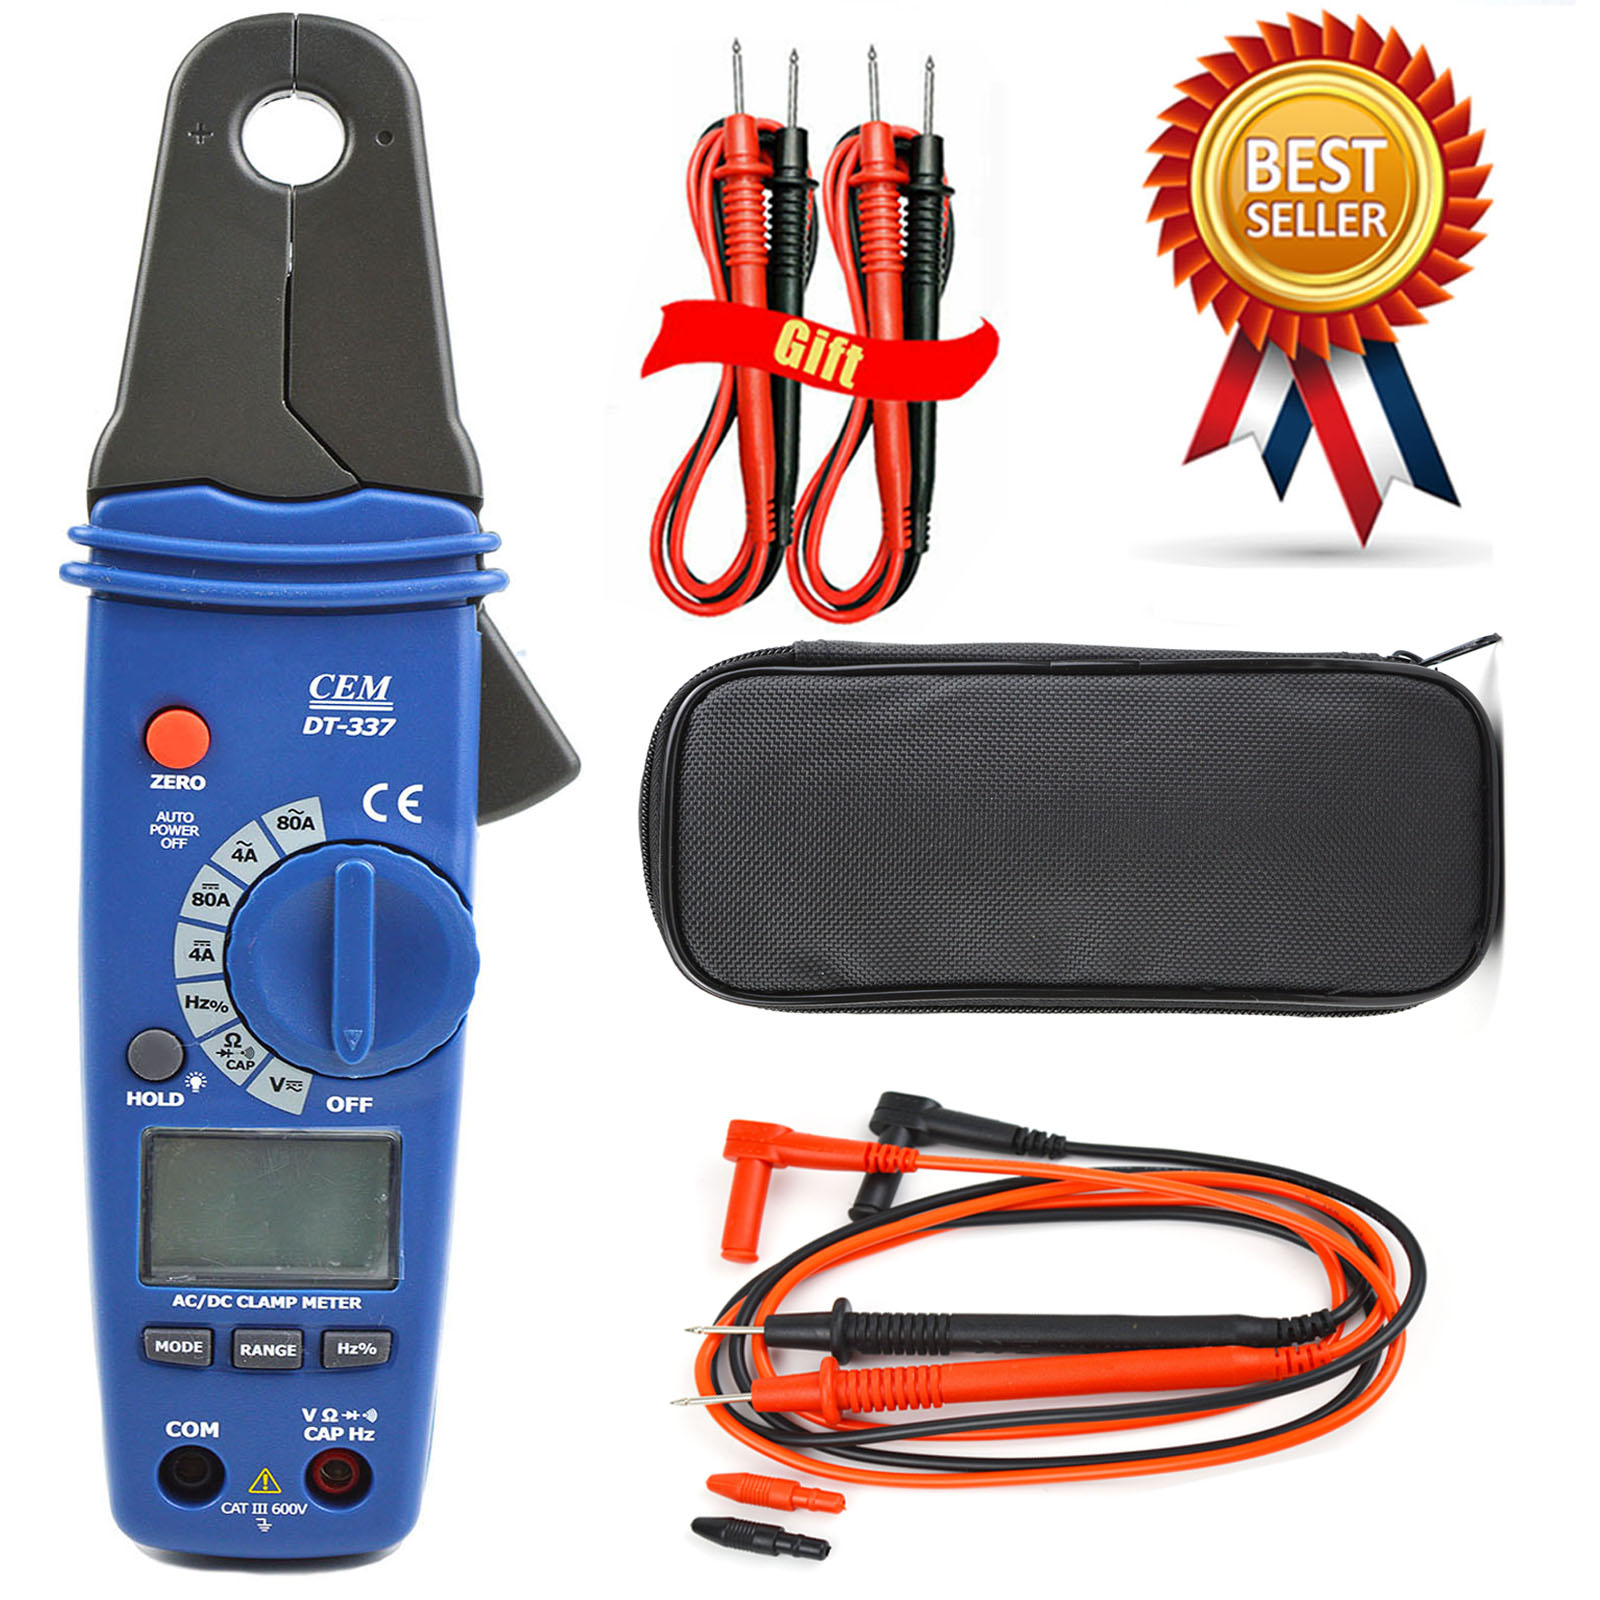 CEM DT-337 Digital Clamp Meter Small Jaw Ammeter High Precision AC / DC Clamp Meter Multimeter Leakage Current Meter Auto Repair vc6056a victor digital clamp meter victor 6056a